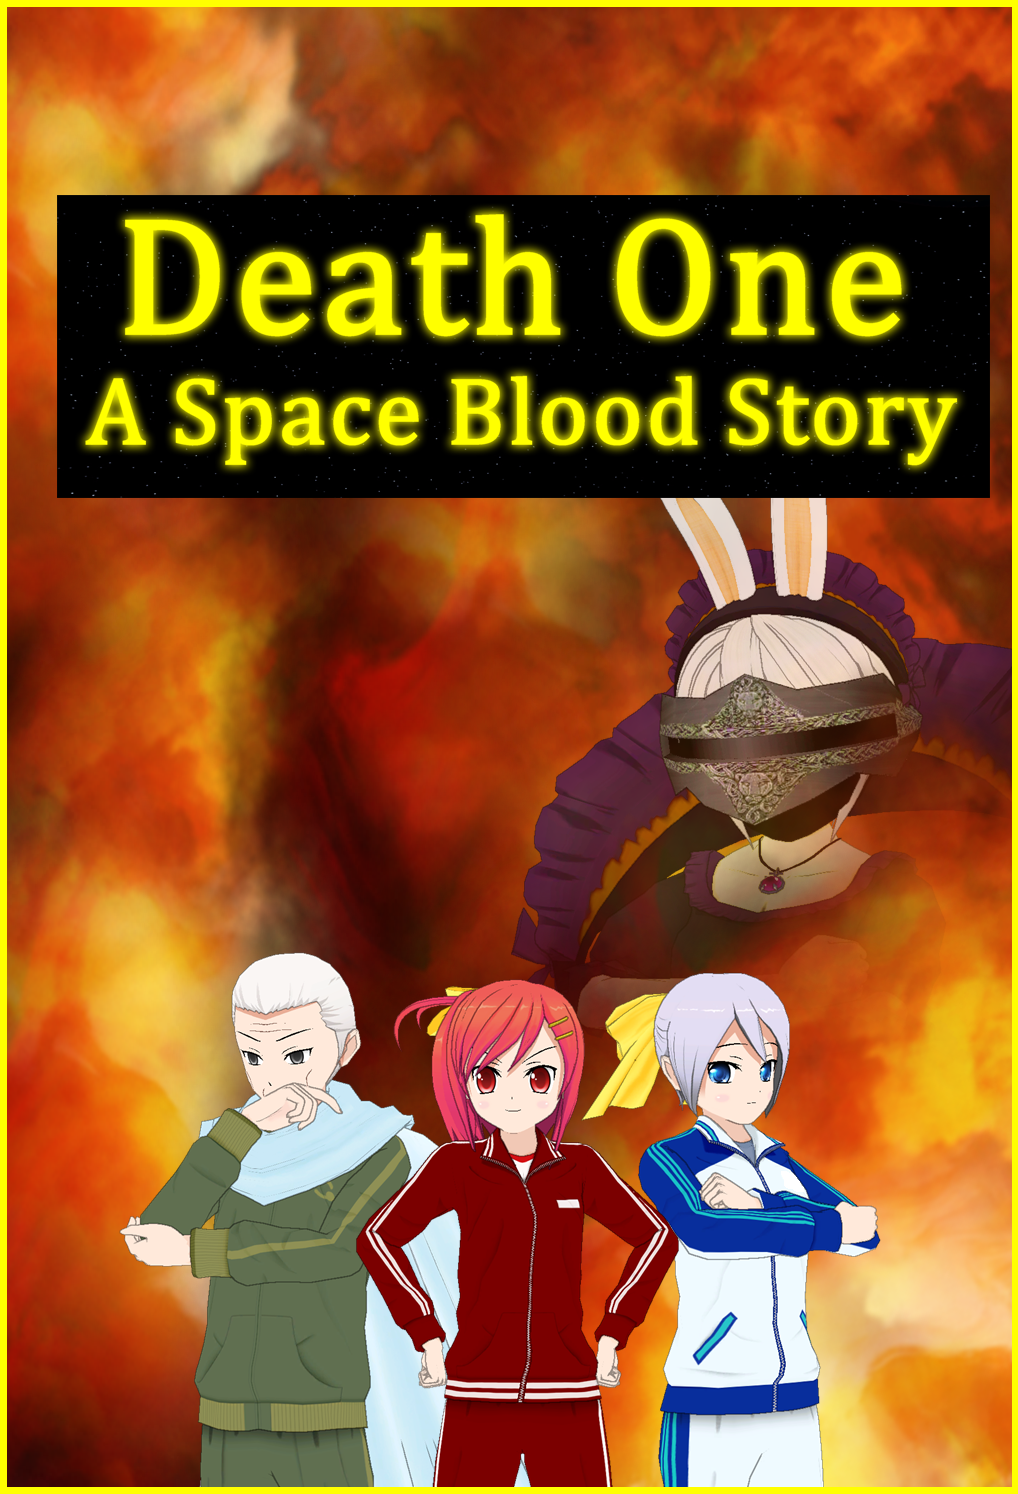 Death One: A Space Blood Story